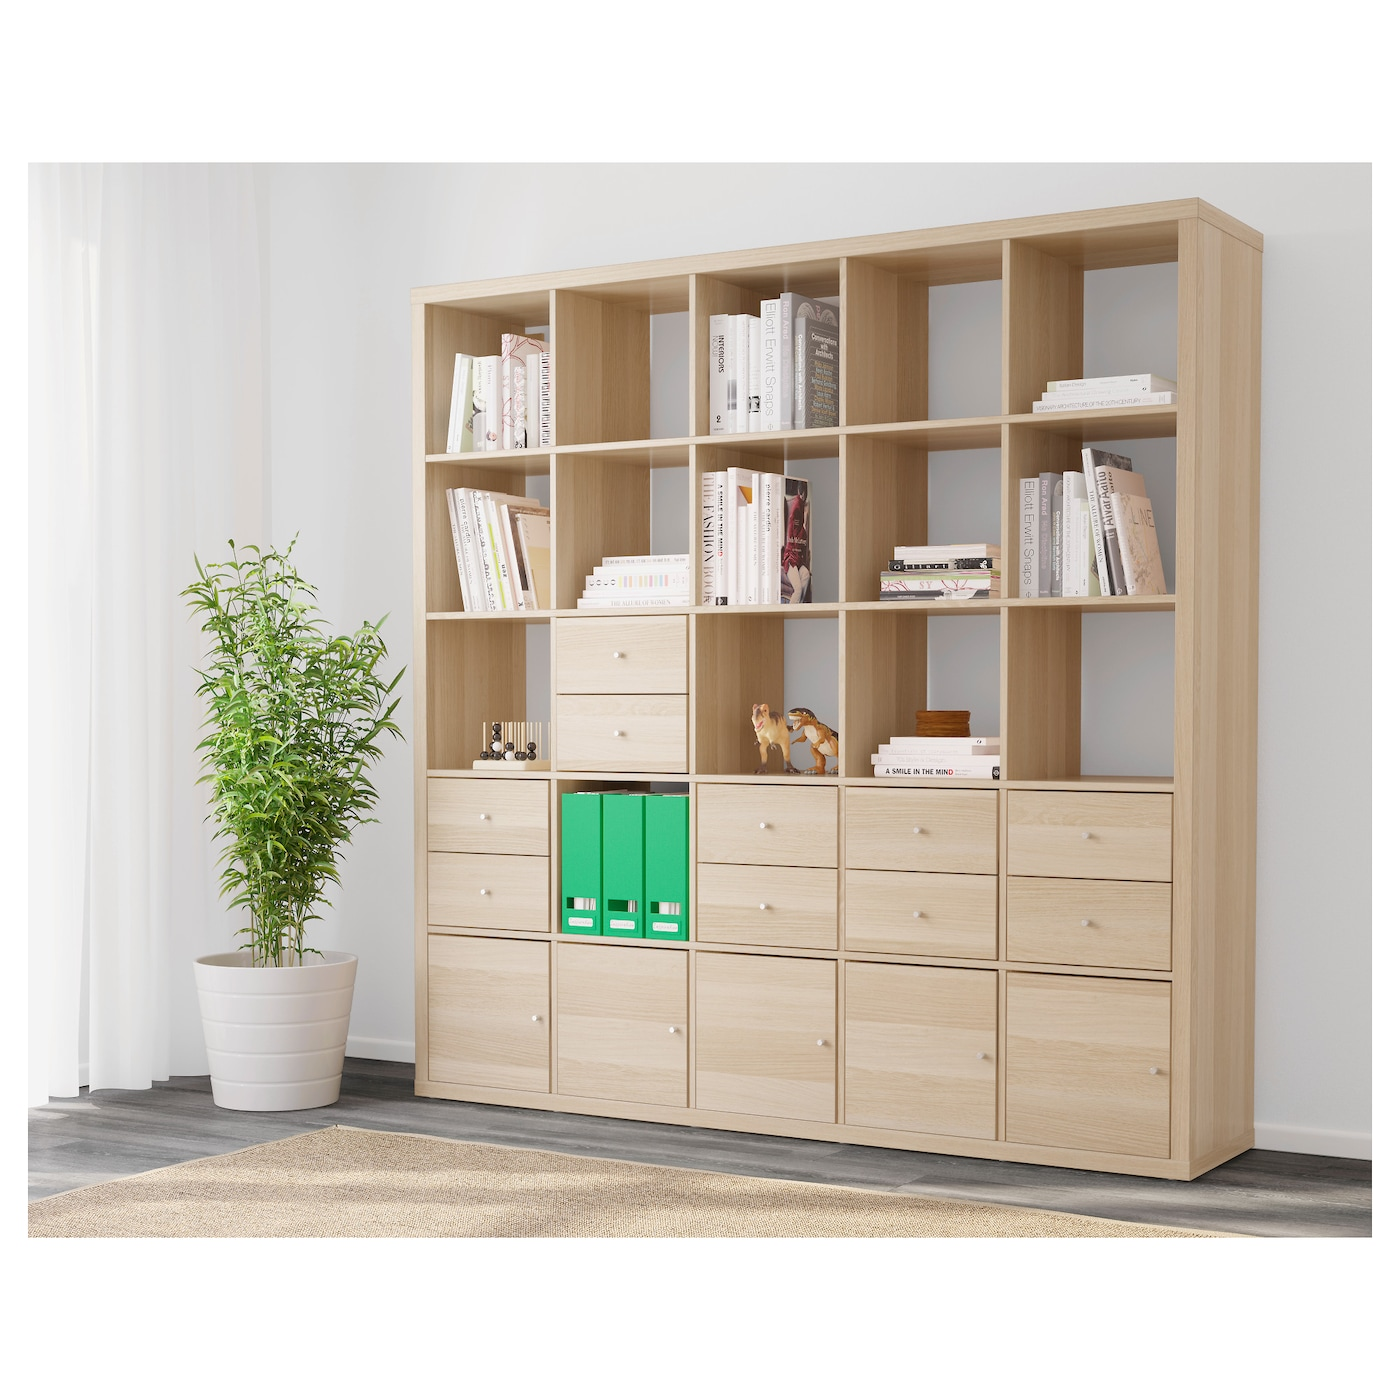 kallax shelving unit with 10 inserts white stained oak effect 182 x 182 cm ikea. Black Bedroom Furniture Sets. Home Design Ideas